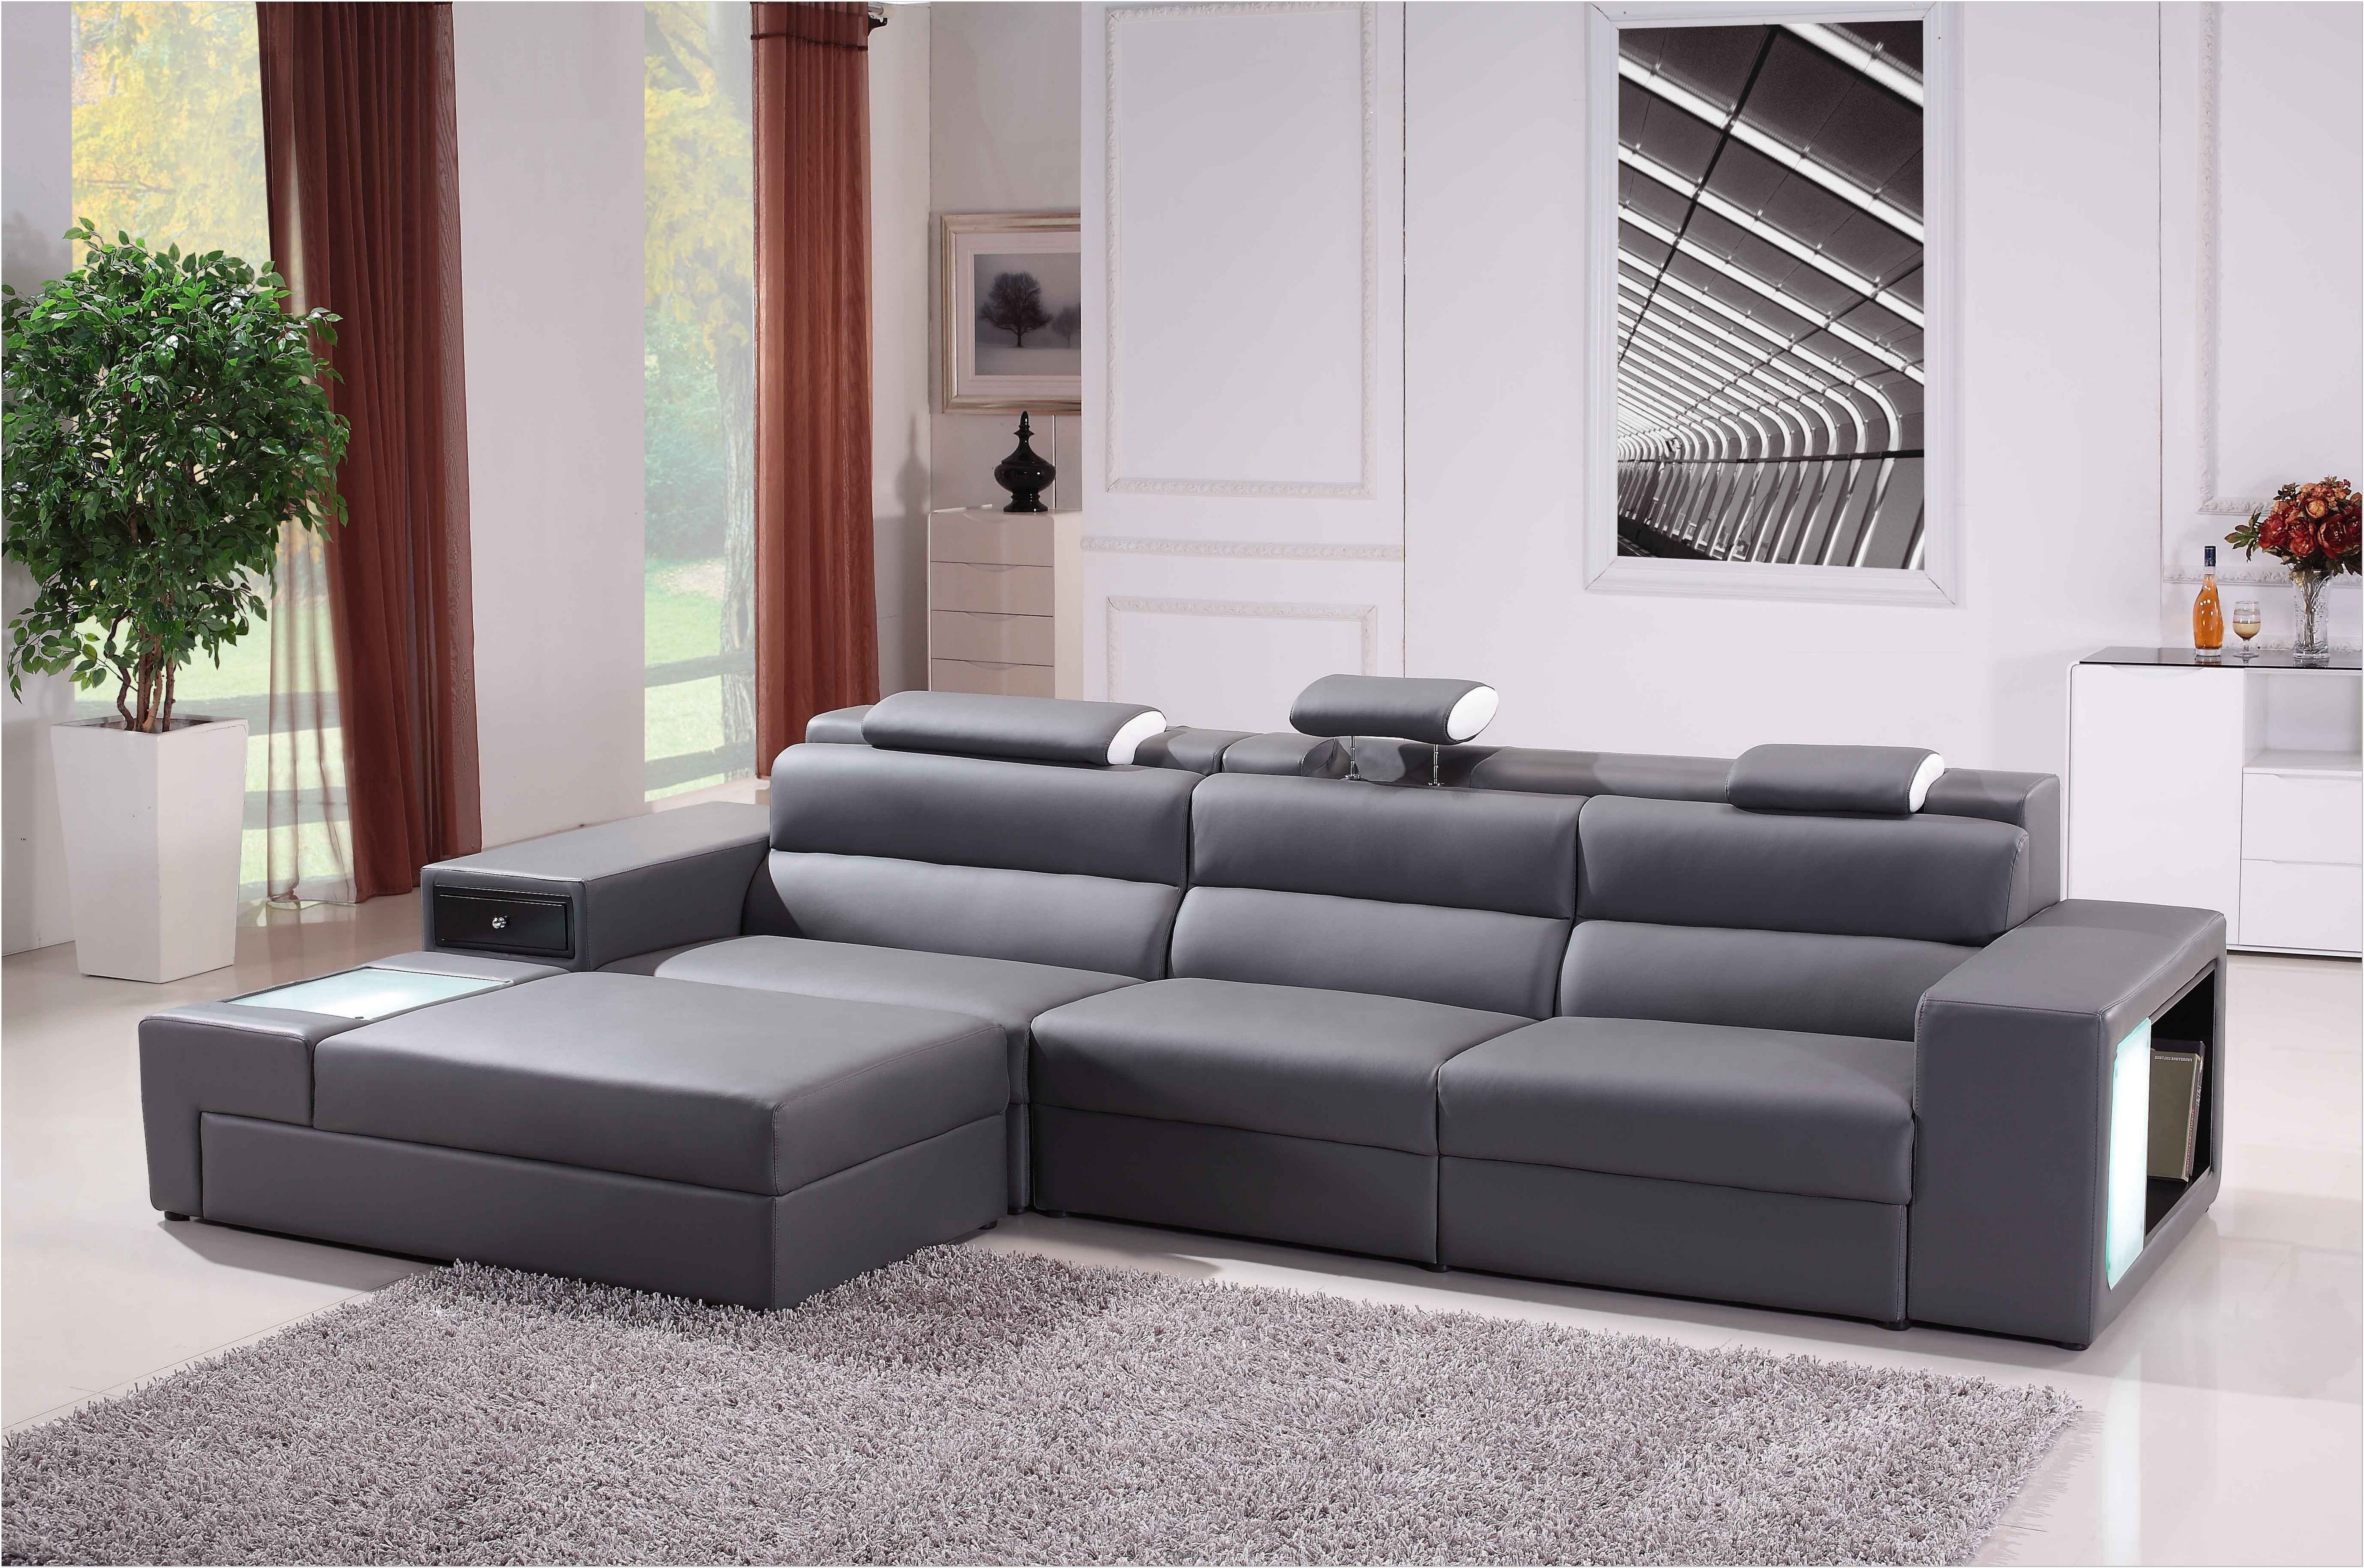 inspirational deep seated sofa sectional design-Fresh Deep Seated sofa Sectional Pattern